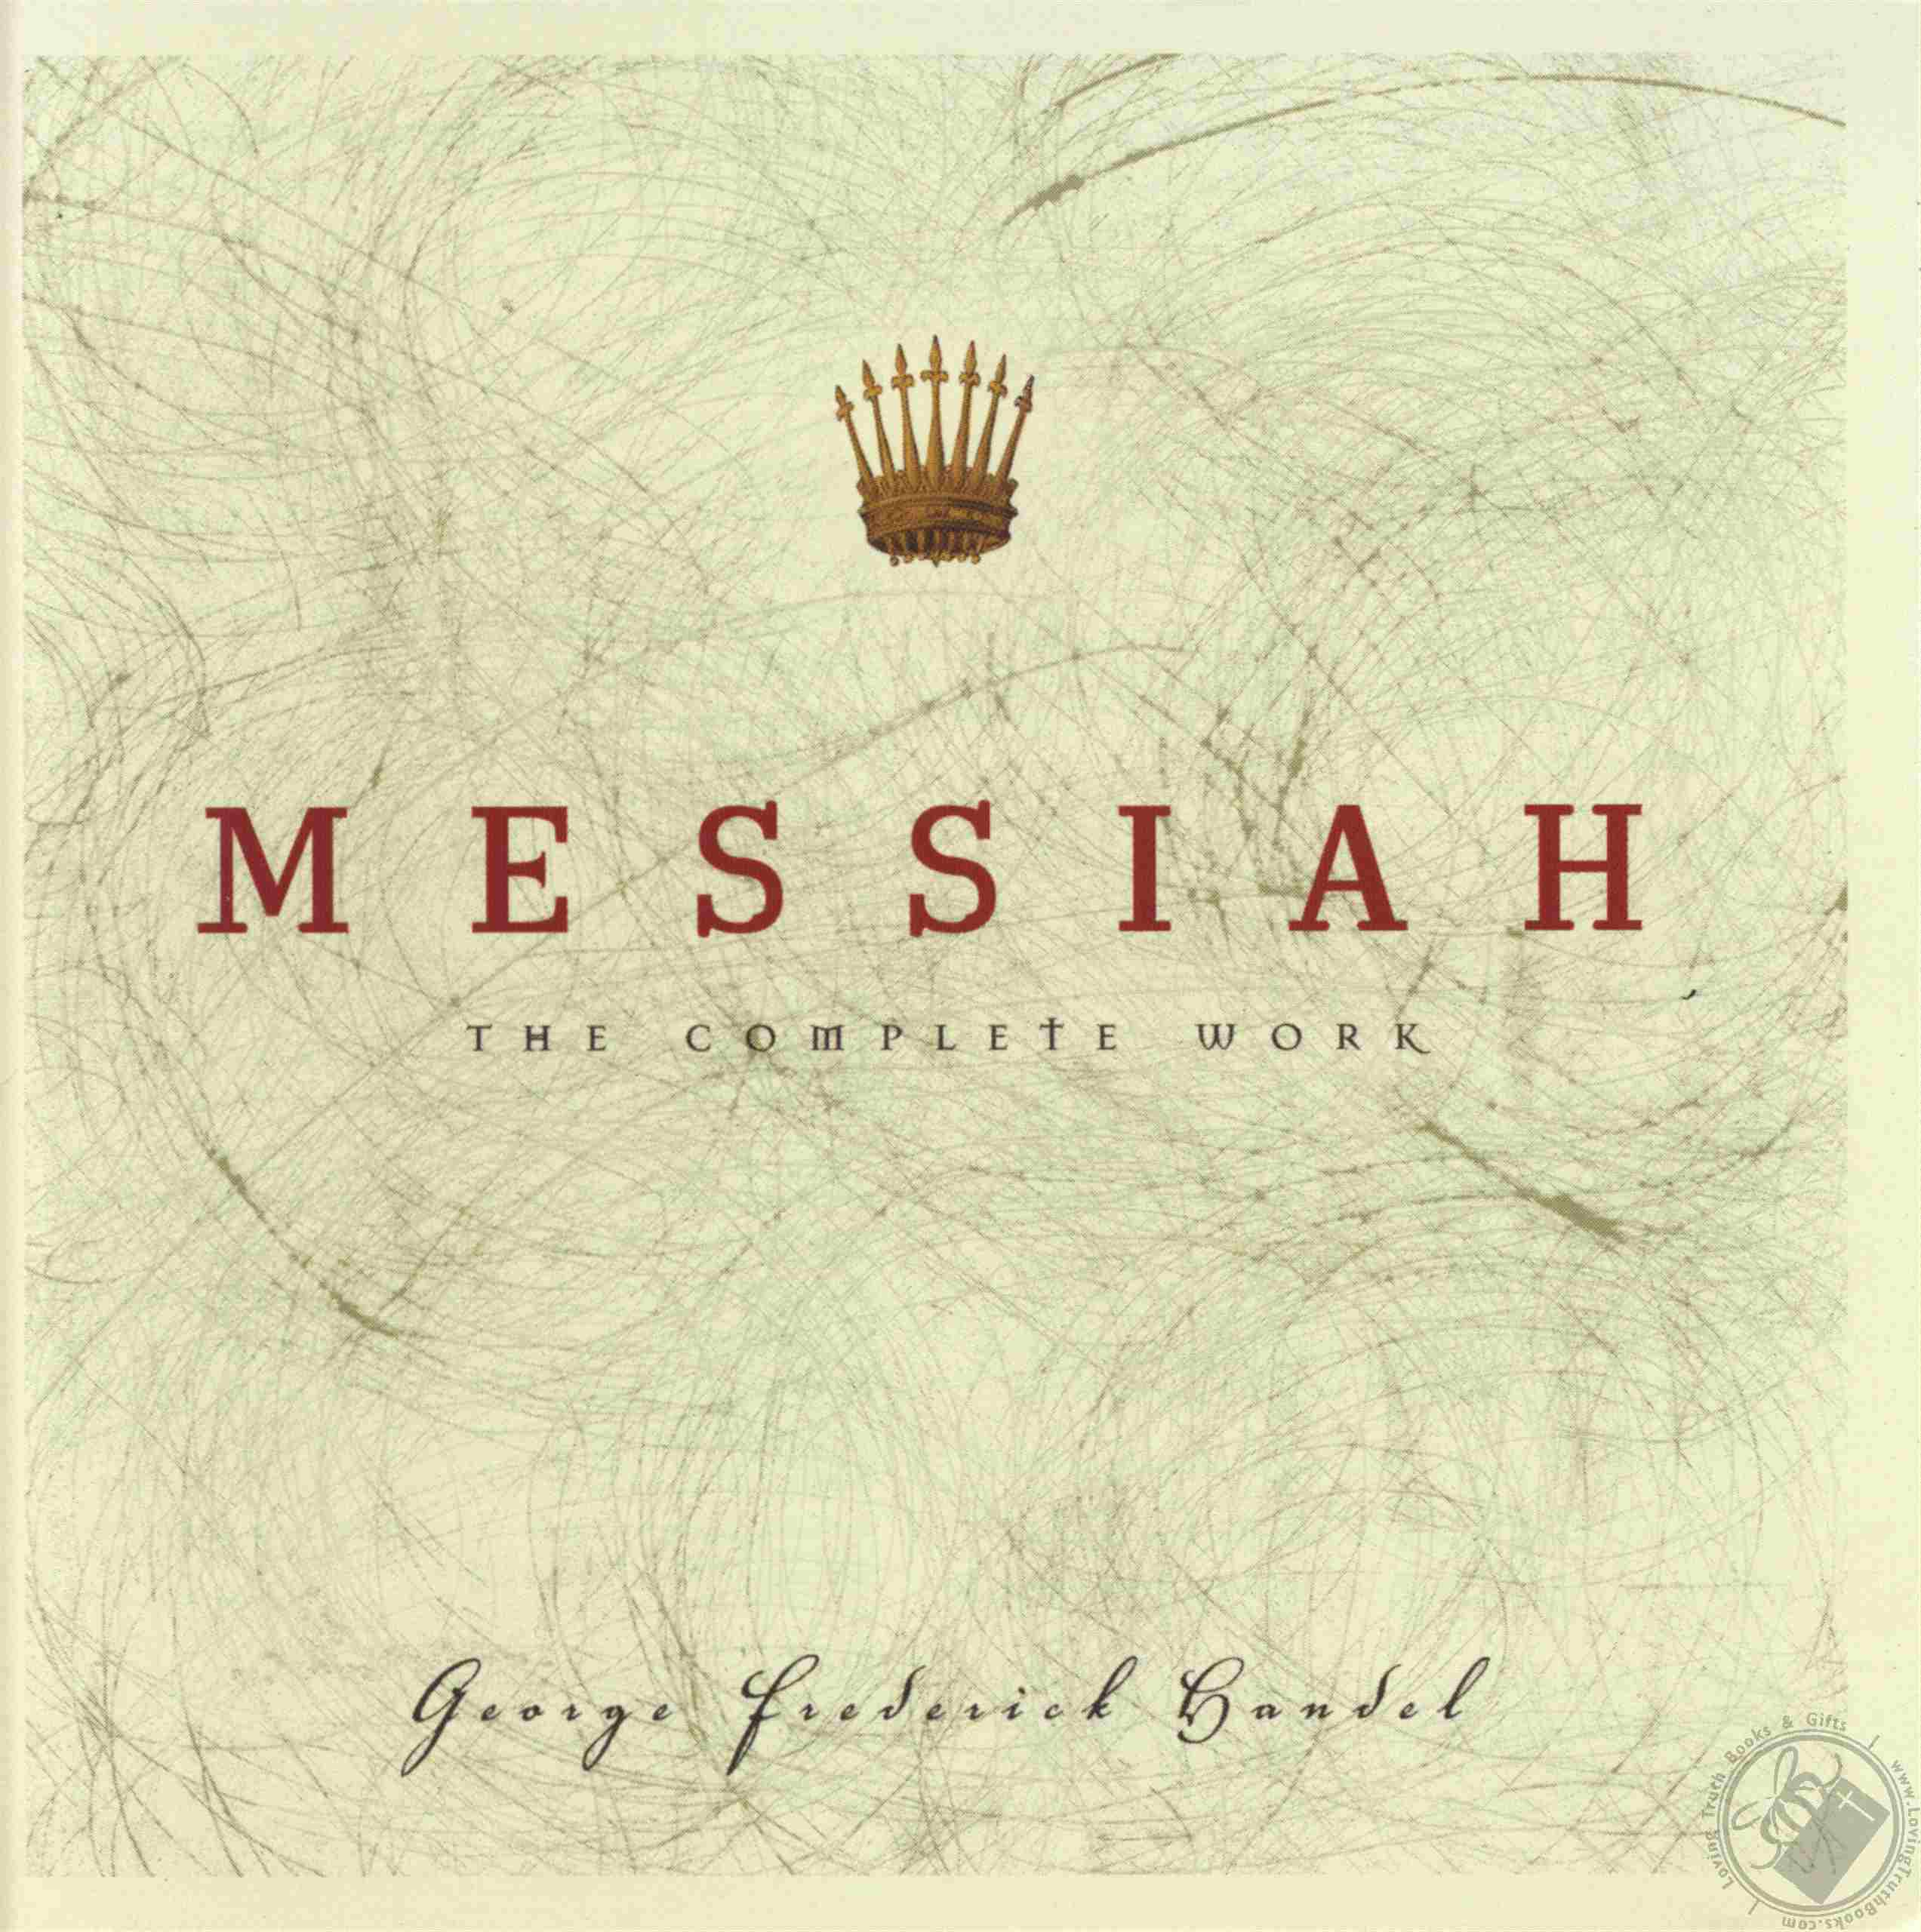 Image result for frederick handel's messiah